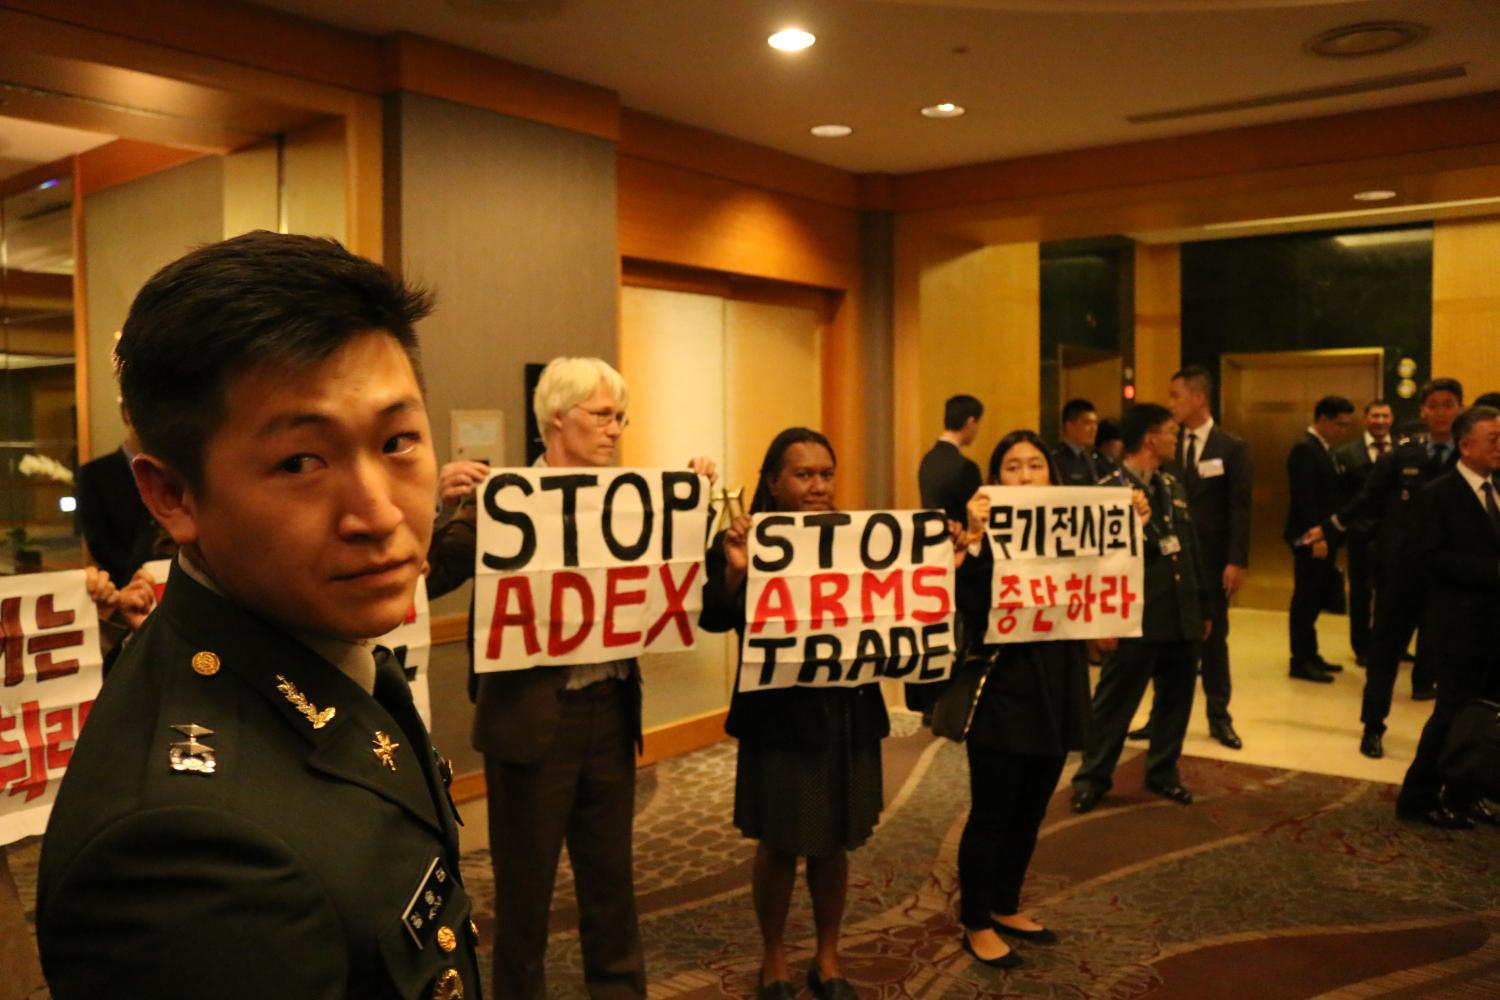 Inside the arms dealers' welcome dinner